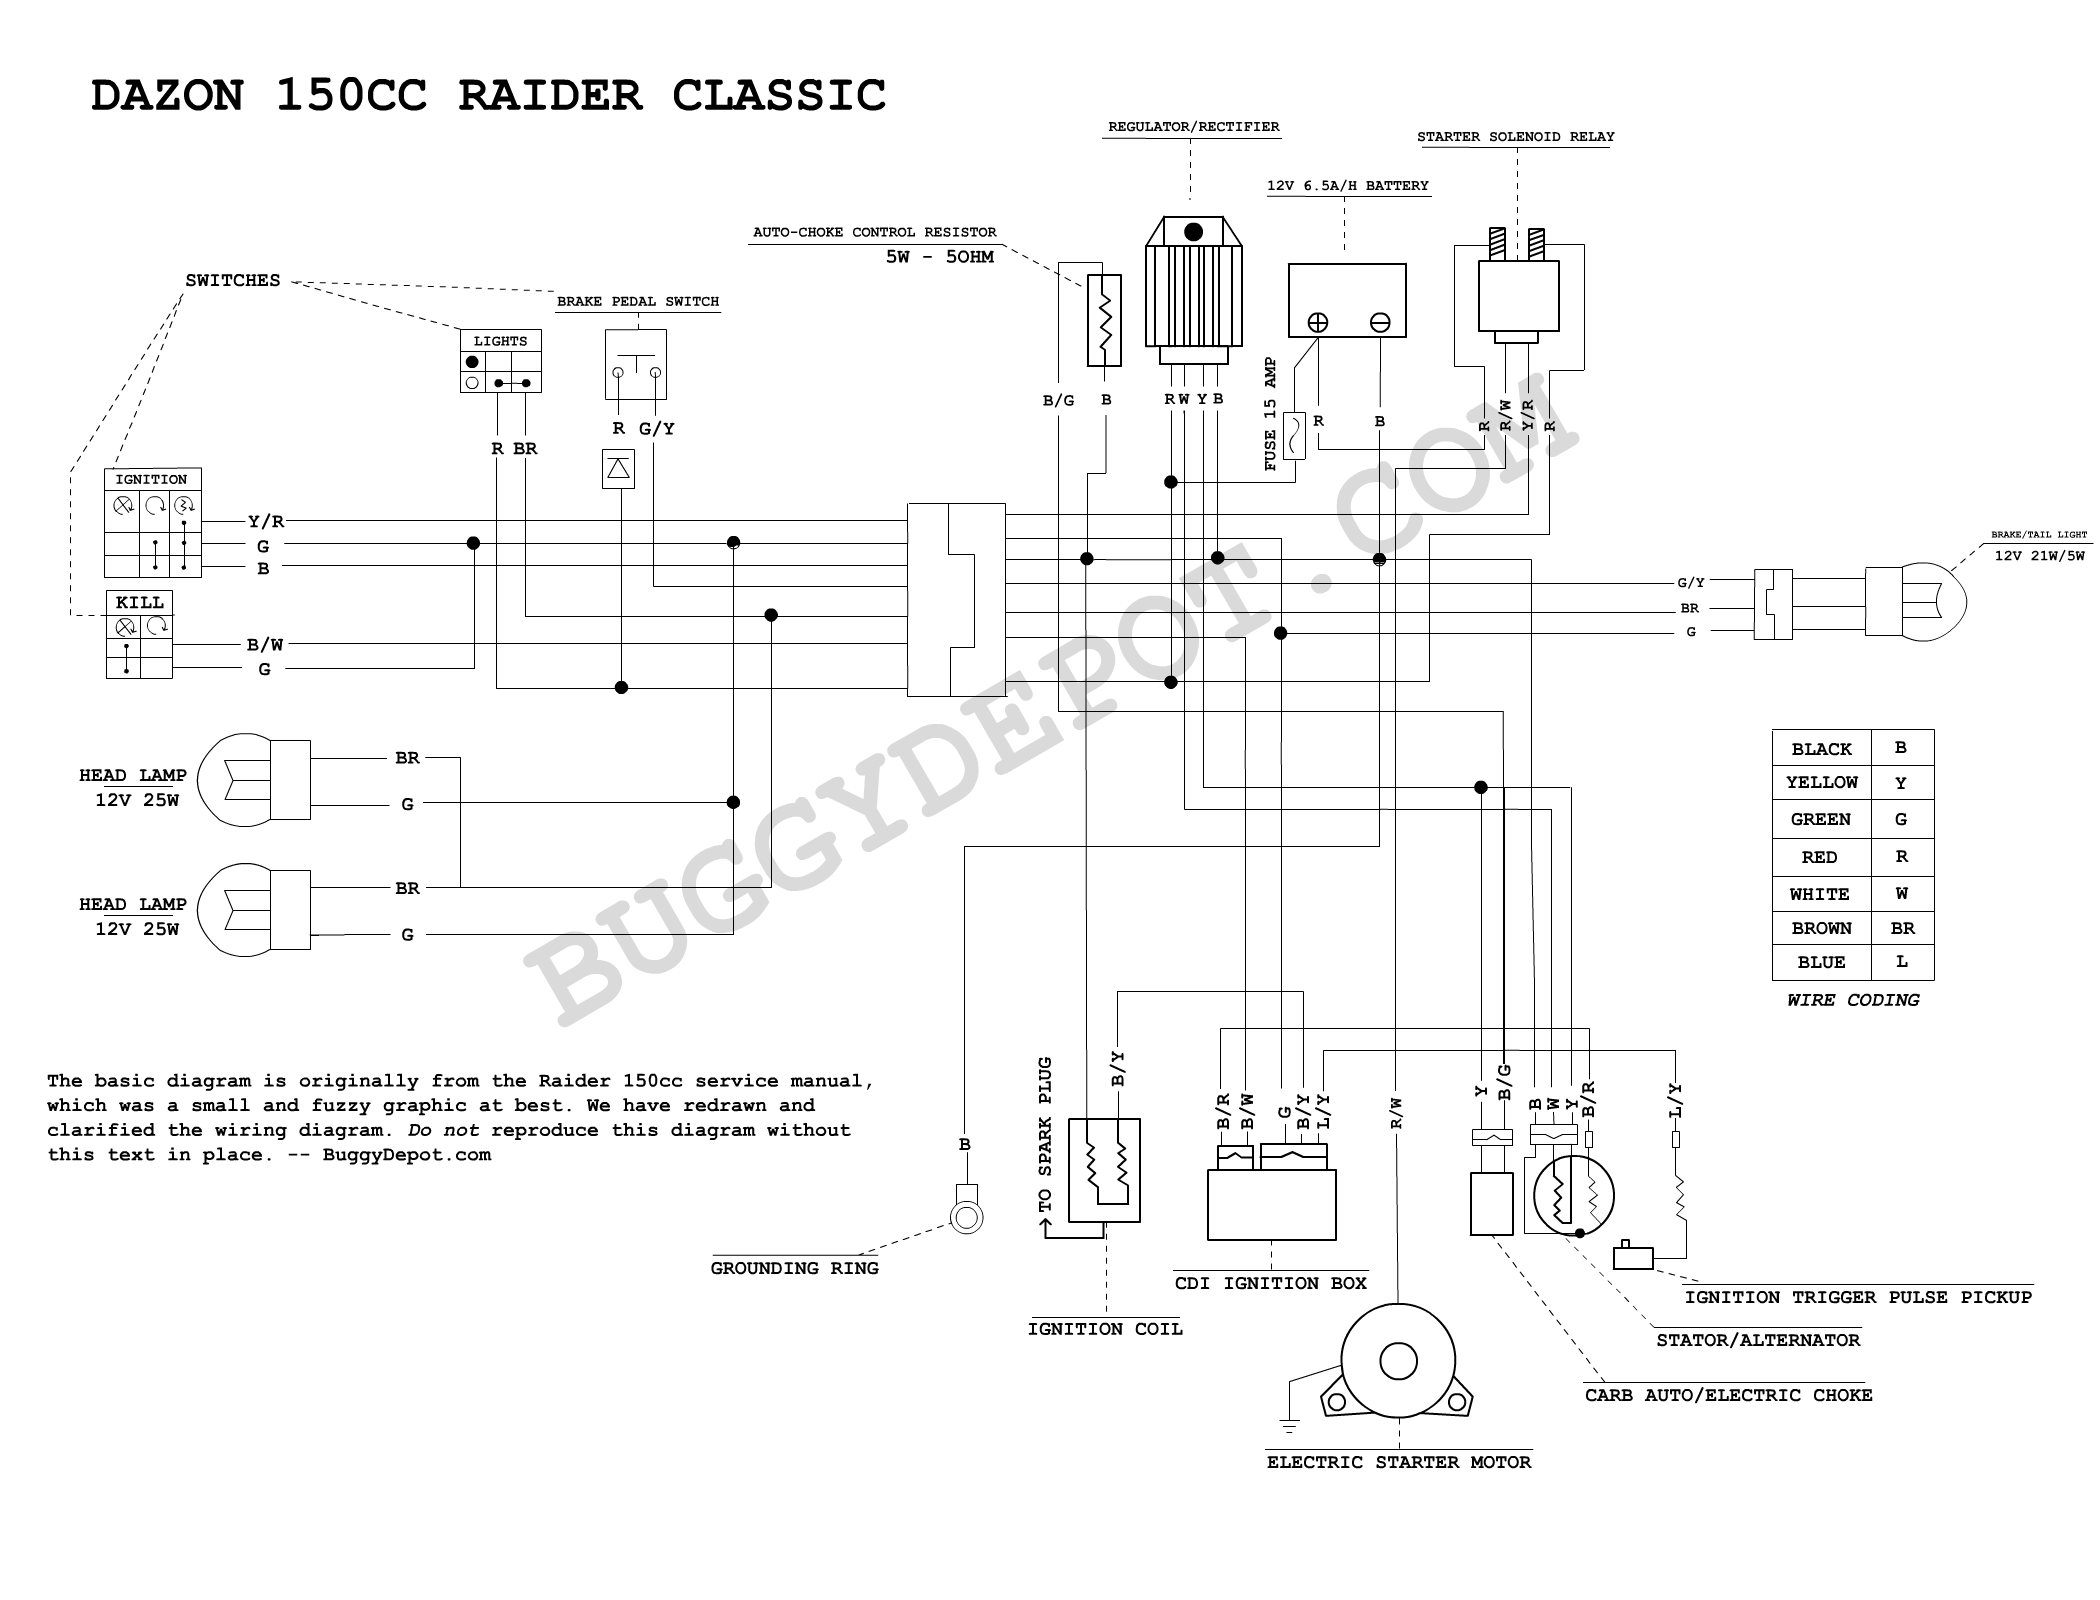 dazon wiring diagram get free image about wiring diagram